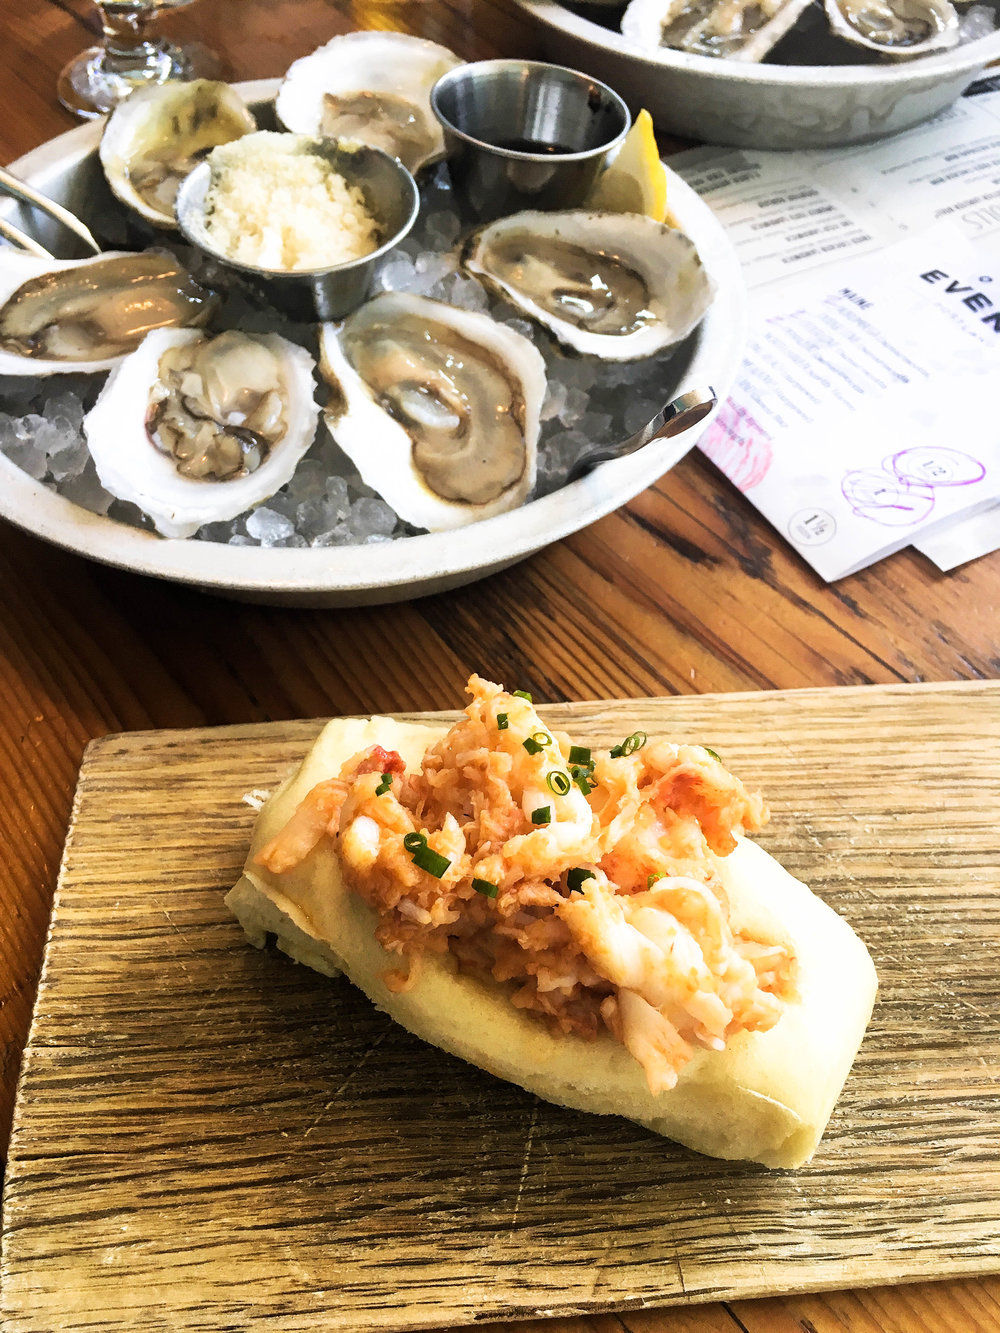 Awesome tapas-style seafood lunch at Eventide. Ordered raw oysters with horseradish snow and their famous lobster roll. It comes with brown butter lobster and a bun that's reminiscent of a Chinese pork bun.